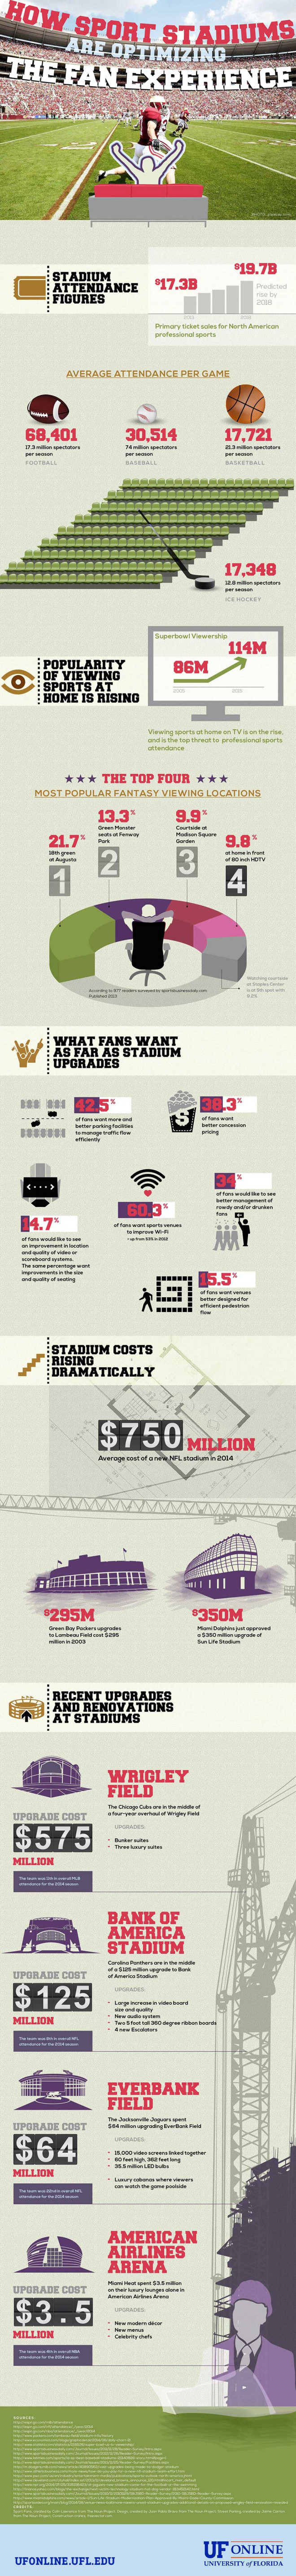 How Sport Stadiums are Optimizing the Fan Experience